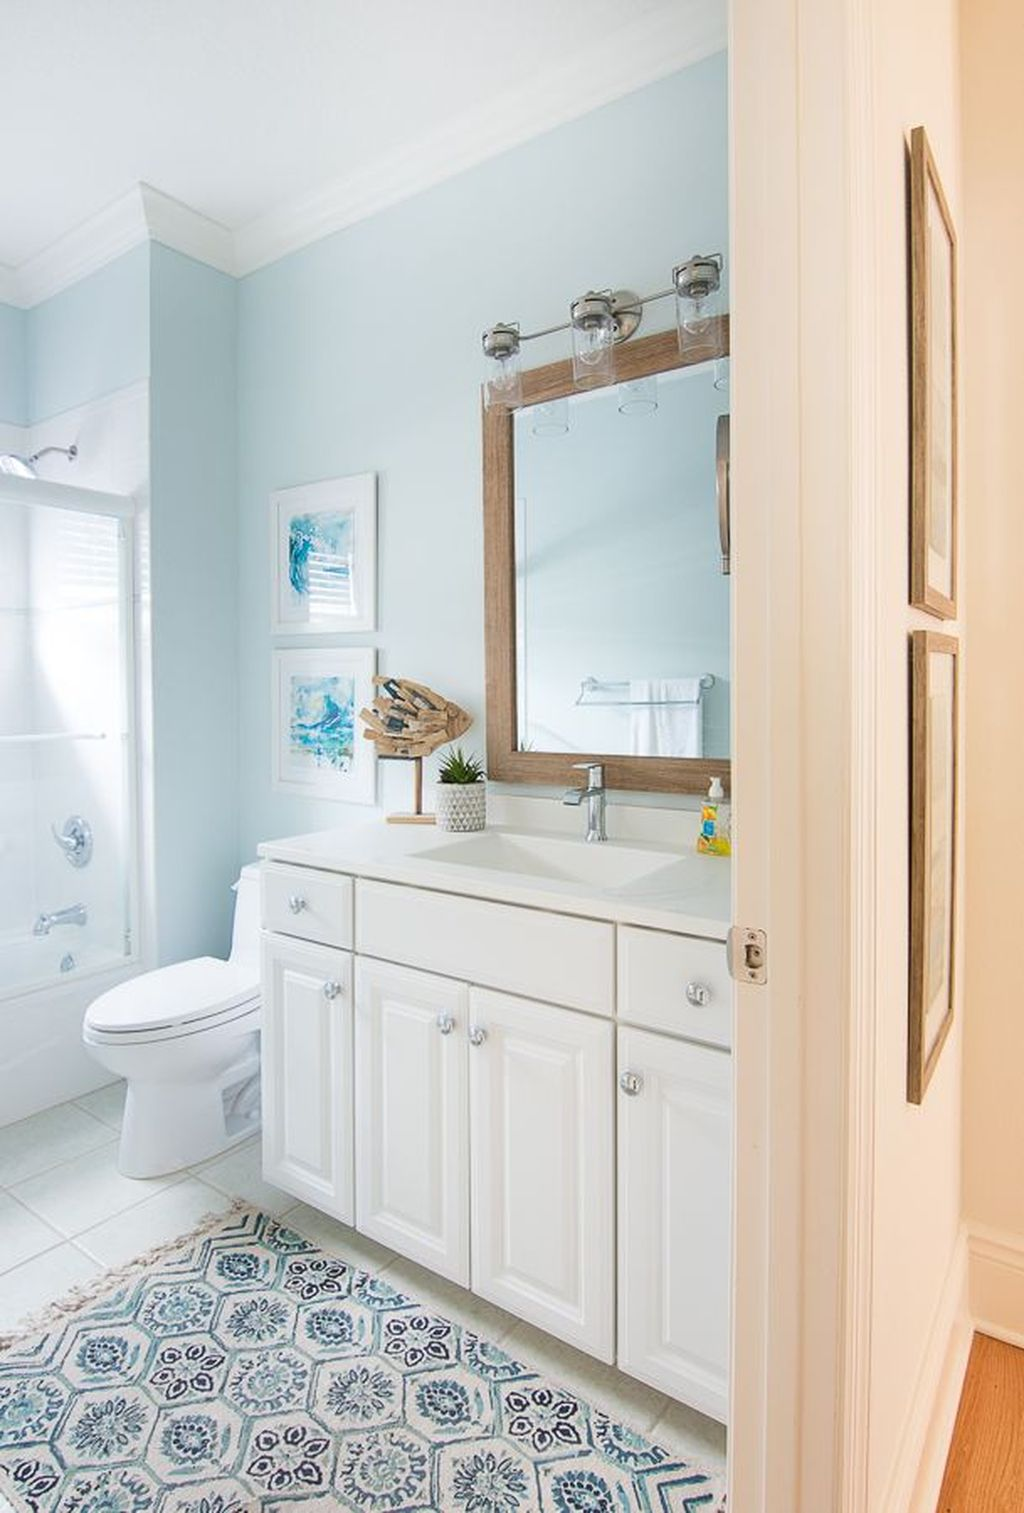 Fabulous Bathroom Decor Ideas With Coastal Style 18